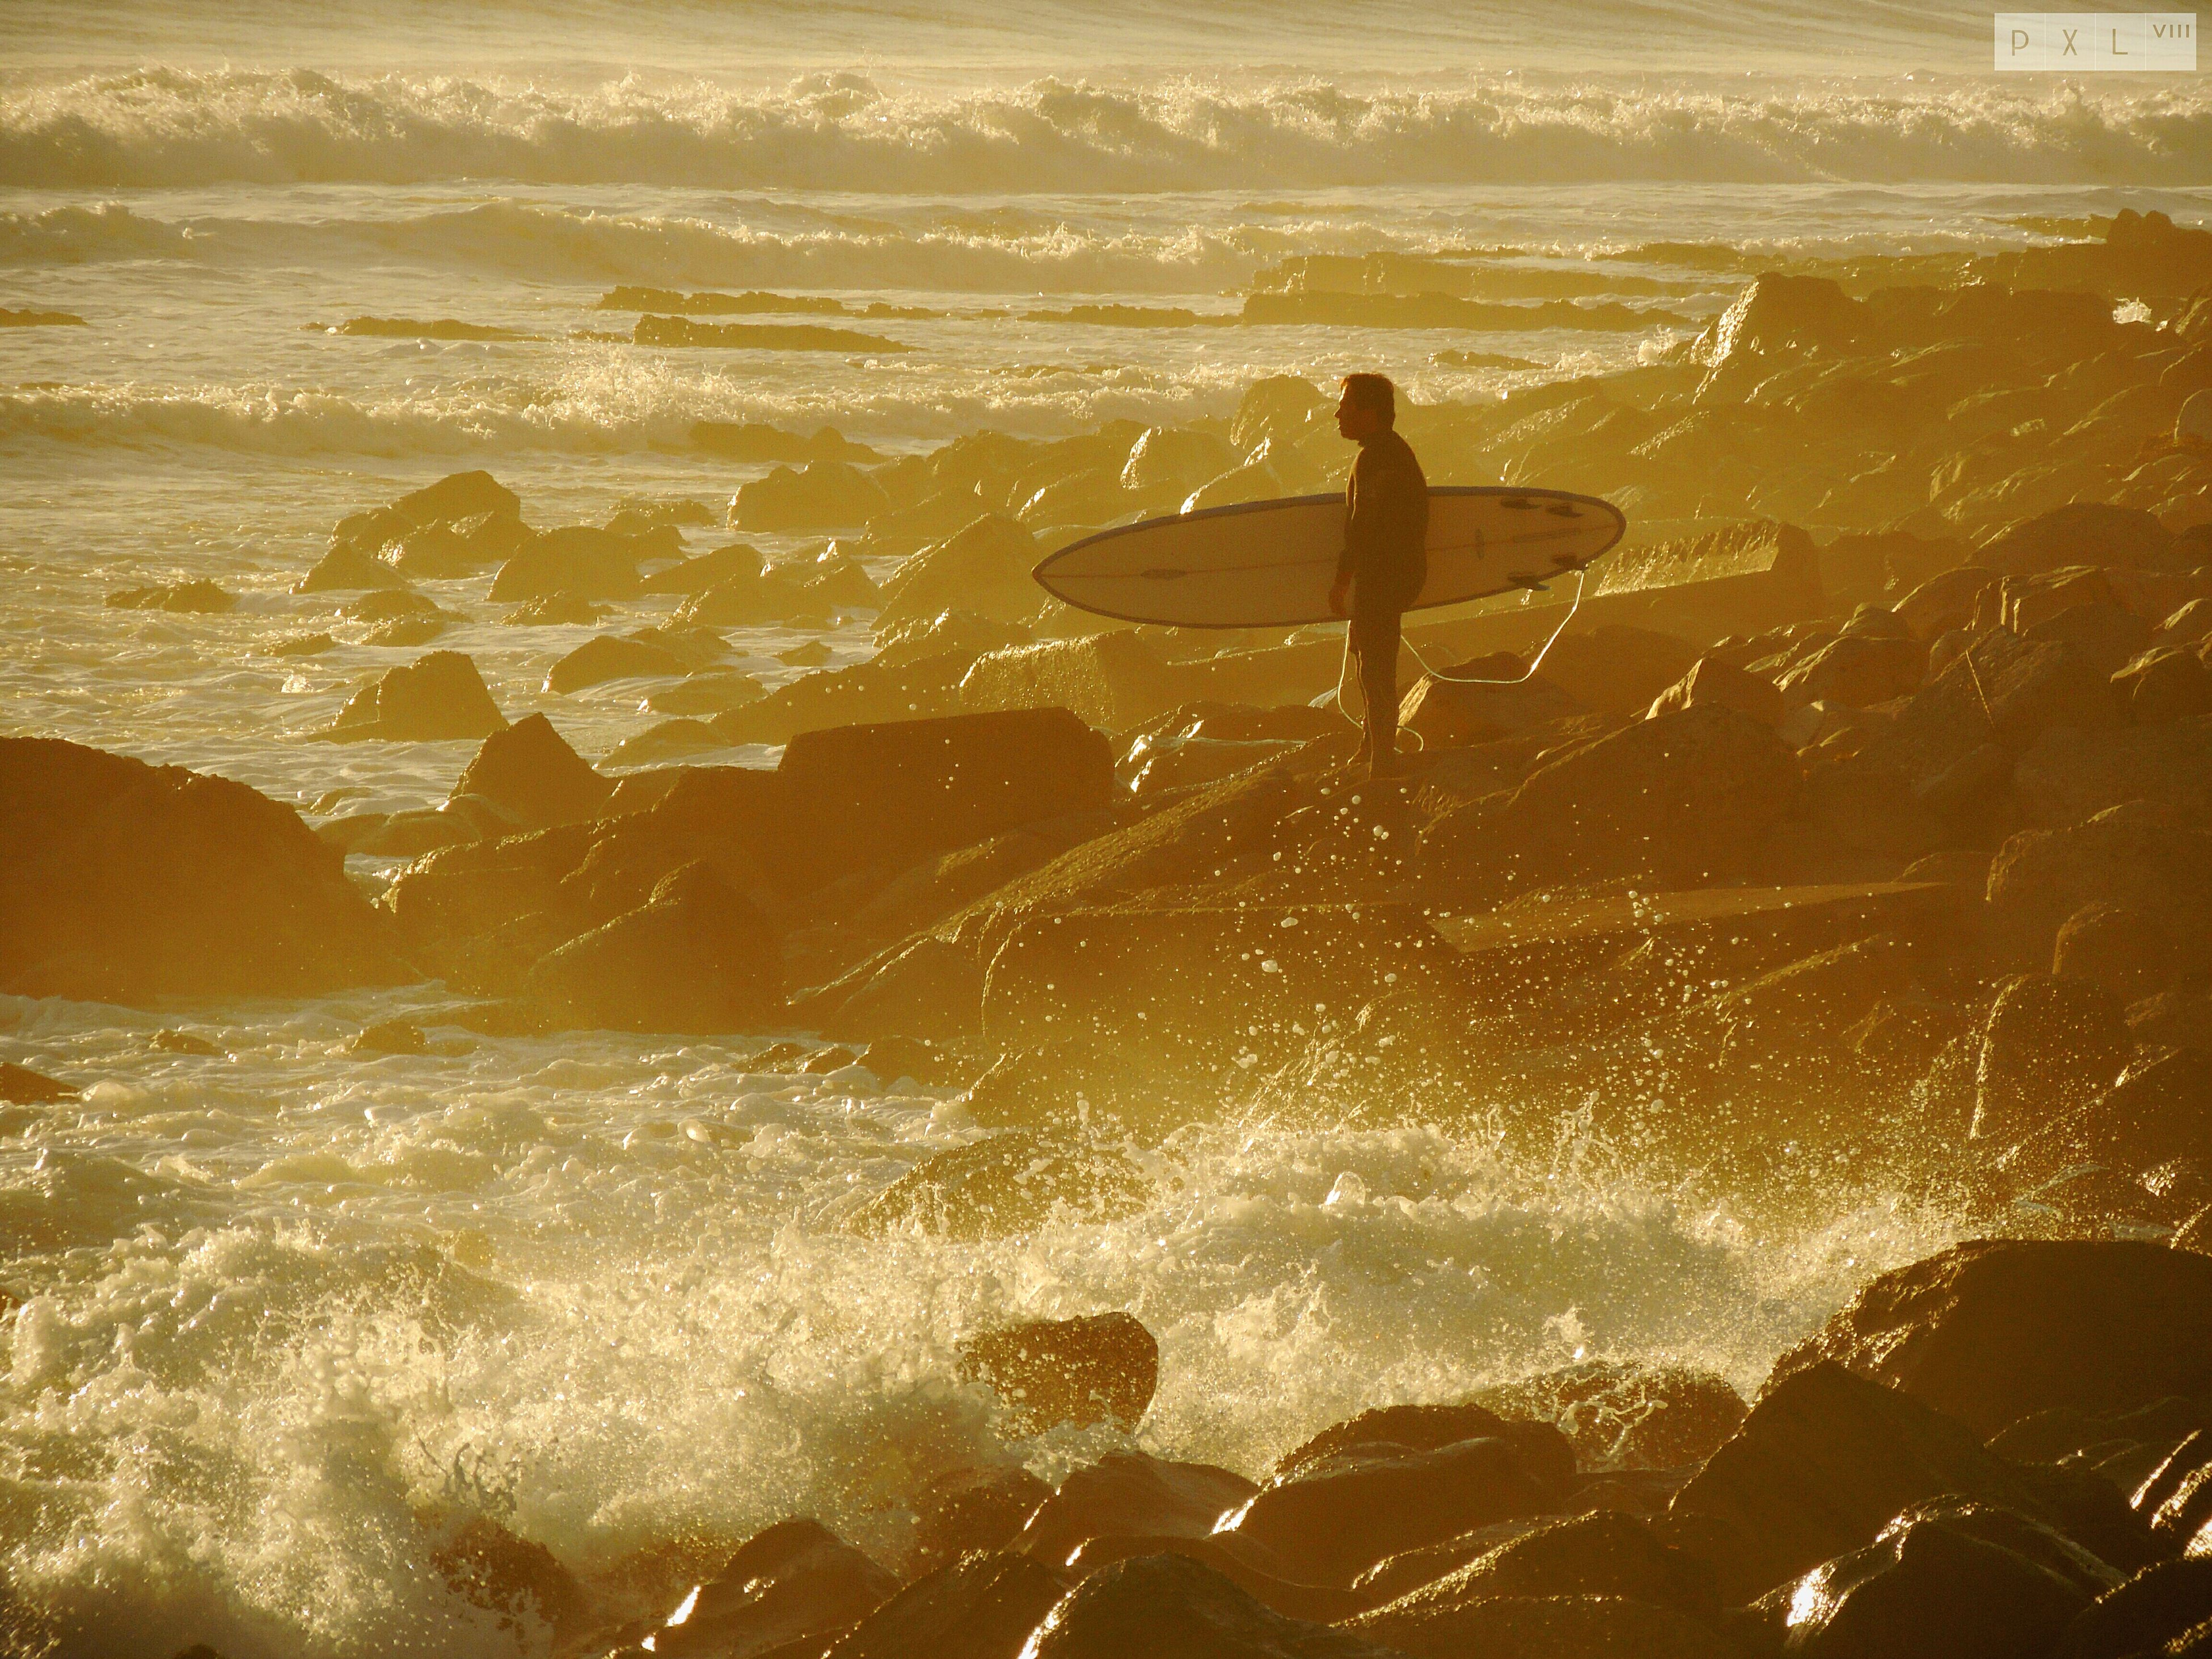 water, sea, leisure activity, lifestyles, wave, beach, men, silhouette, full length, vacations, shore, enjoyment, surf, nature, sunlight, motion, surfboard, beauty in nature